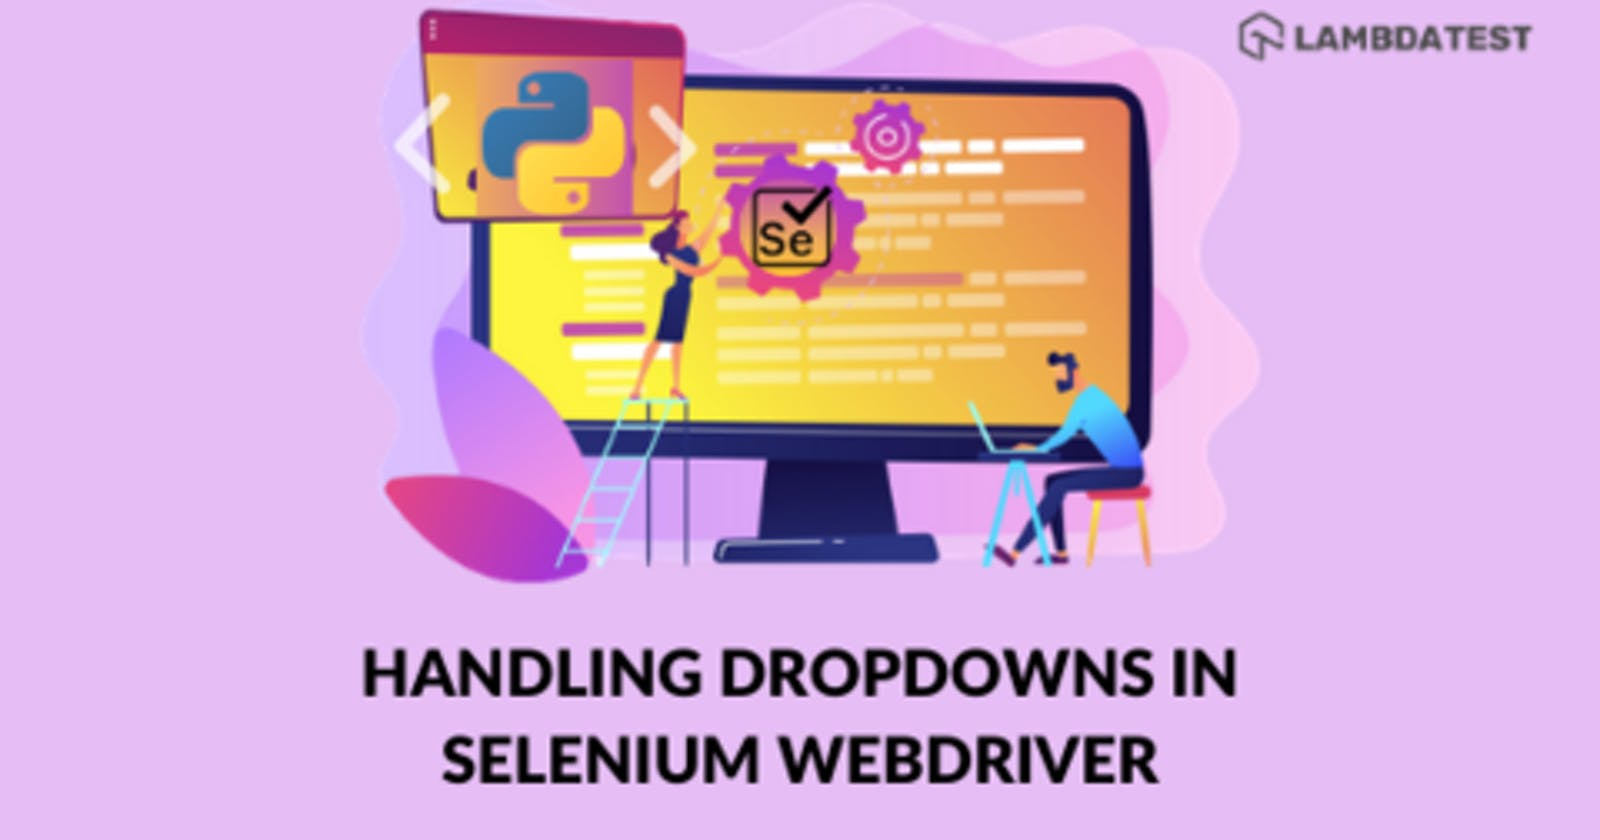 How To Handle Dropdowns In Selenium WebDriver Using Python?